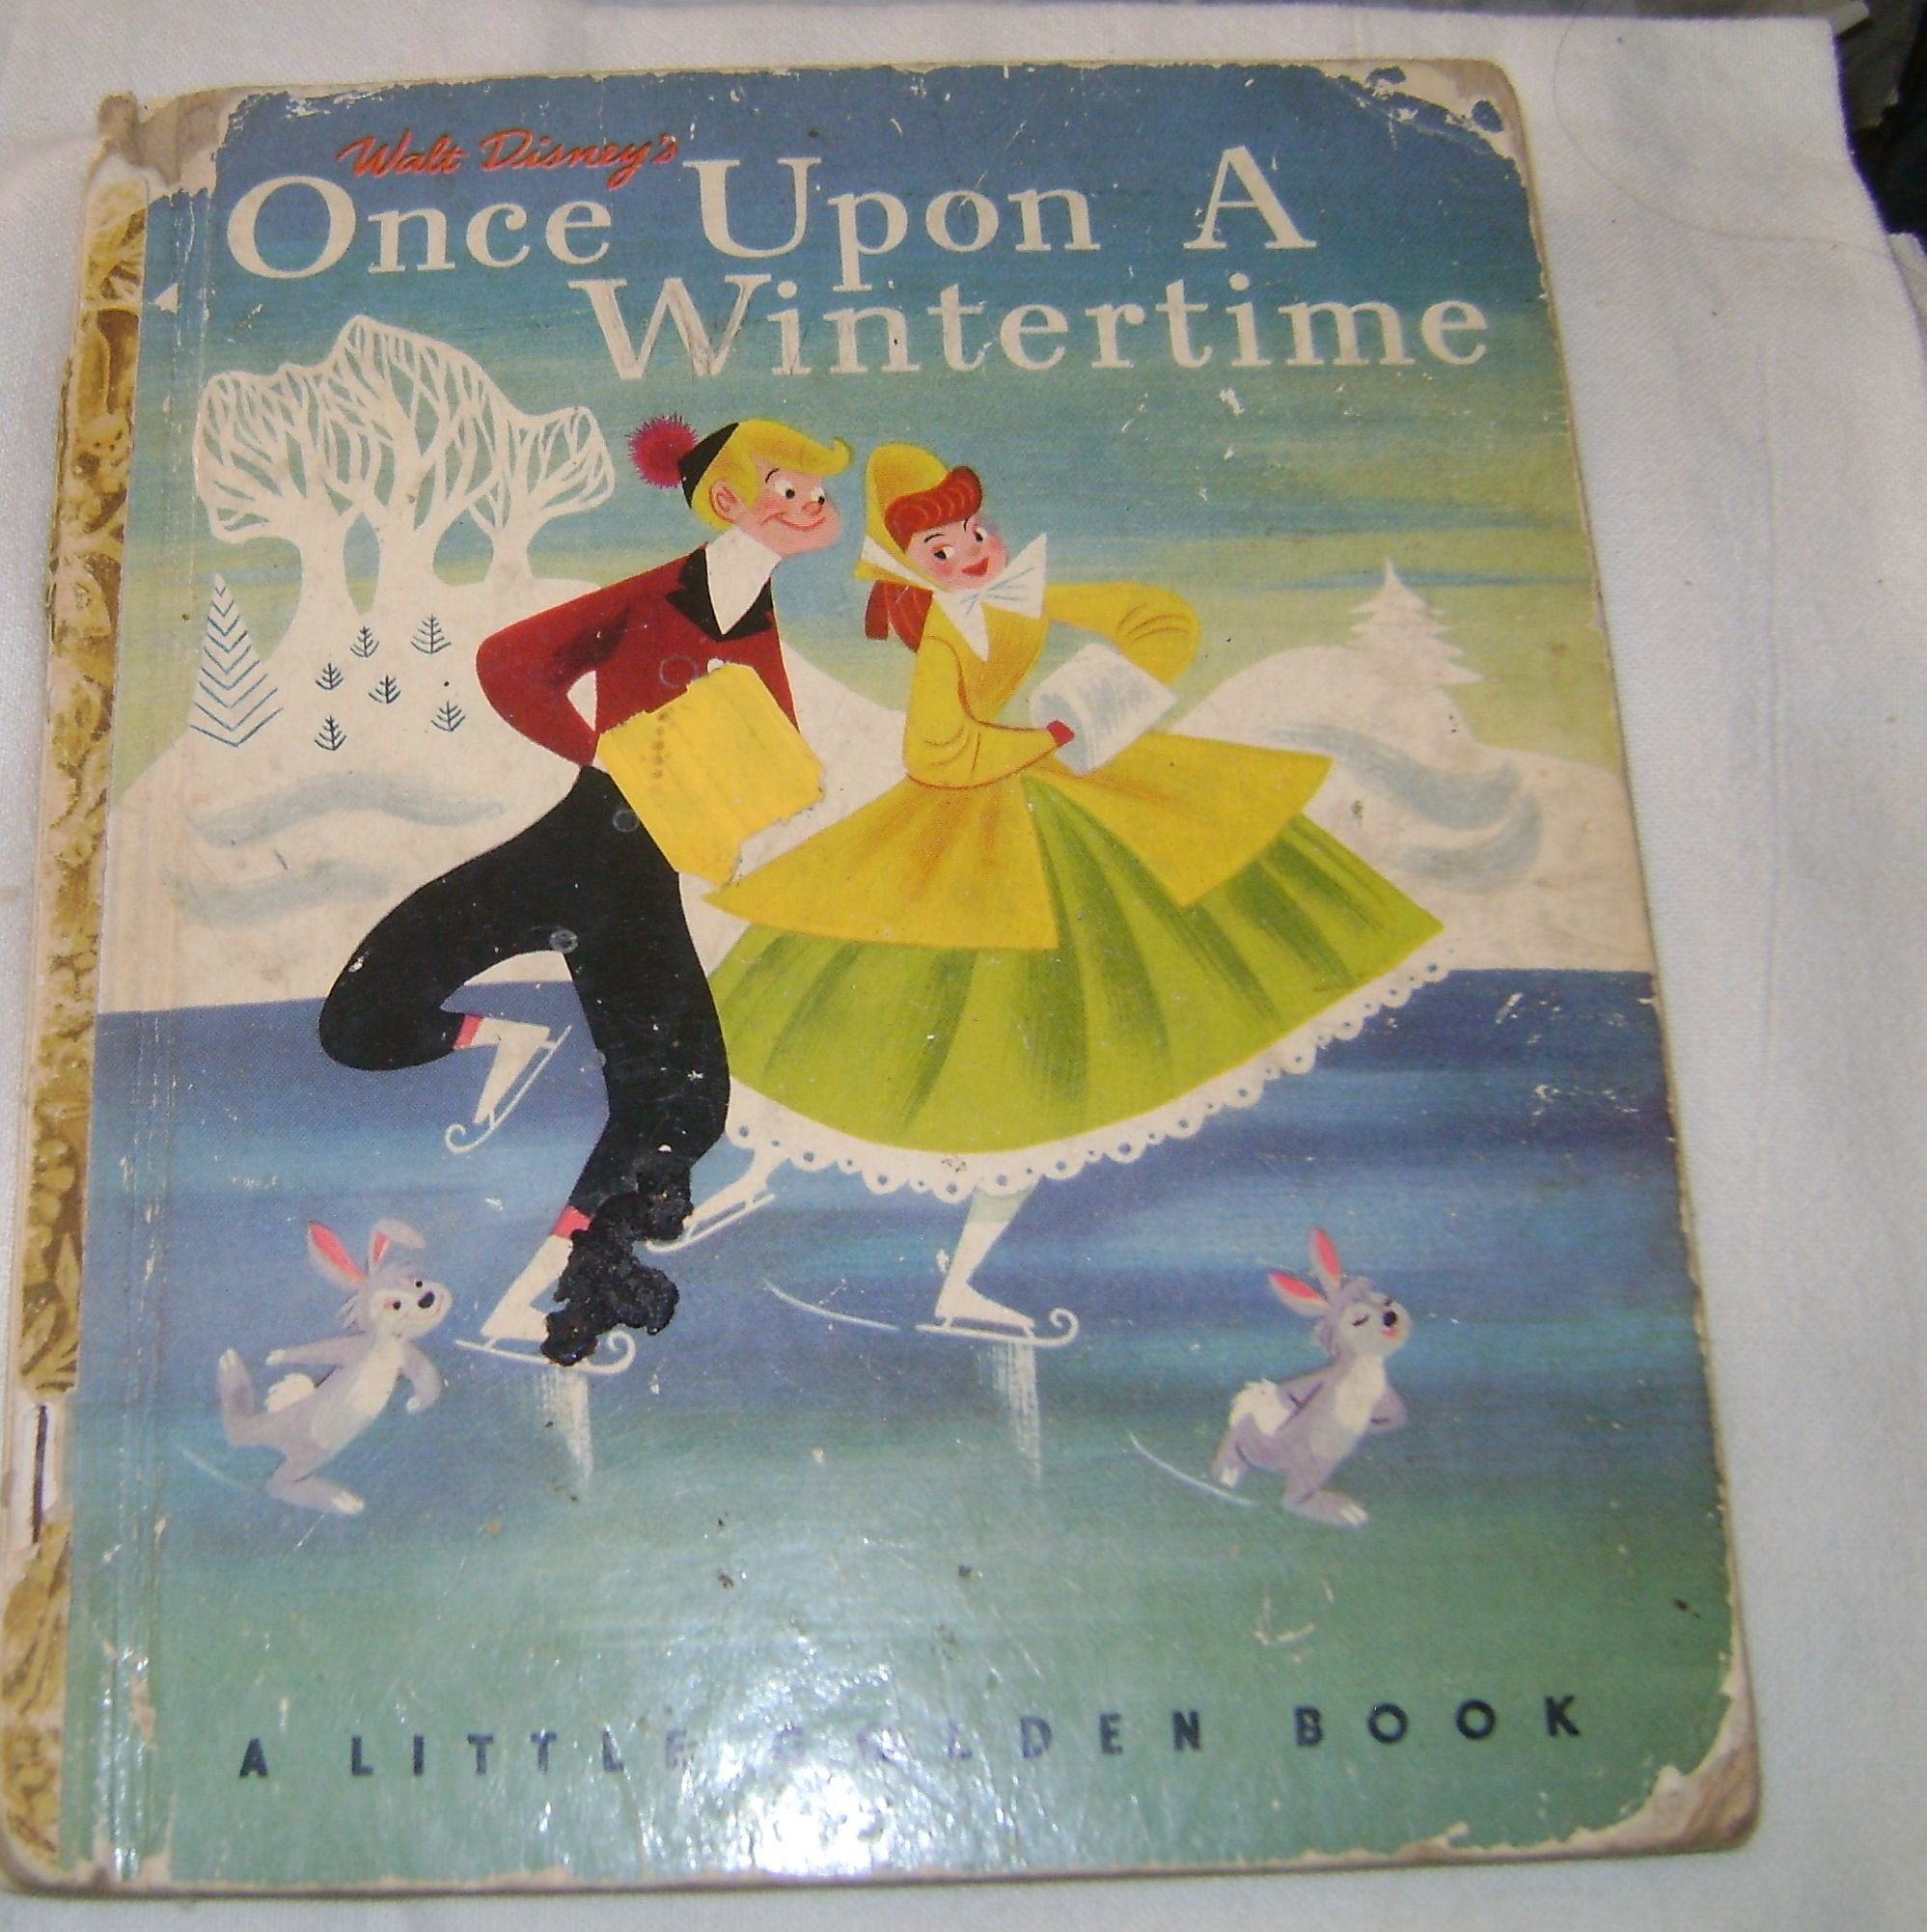 Walt Disney S Once Upon A Wintertime A Little Golden Book Adapted By Tom Oreb Mary Reed Ph D Walt Disney Studio Amazon Com Books